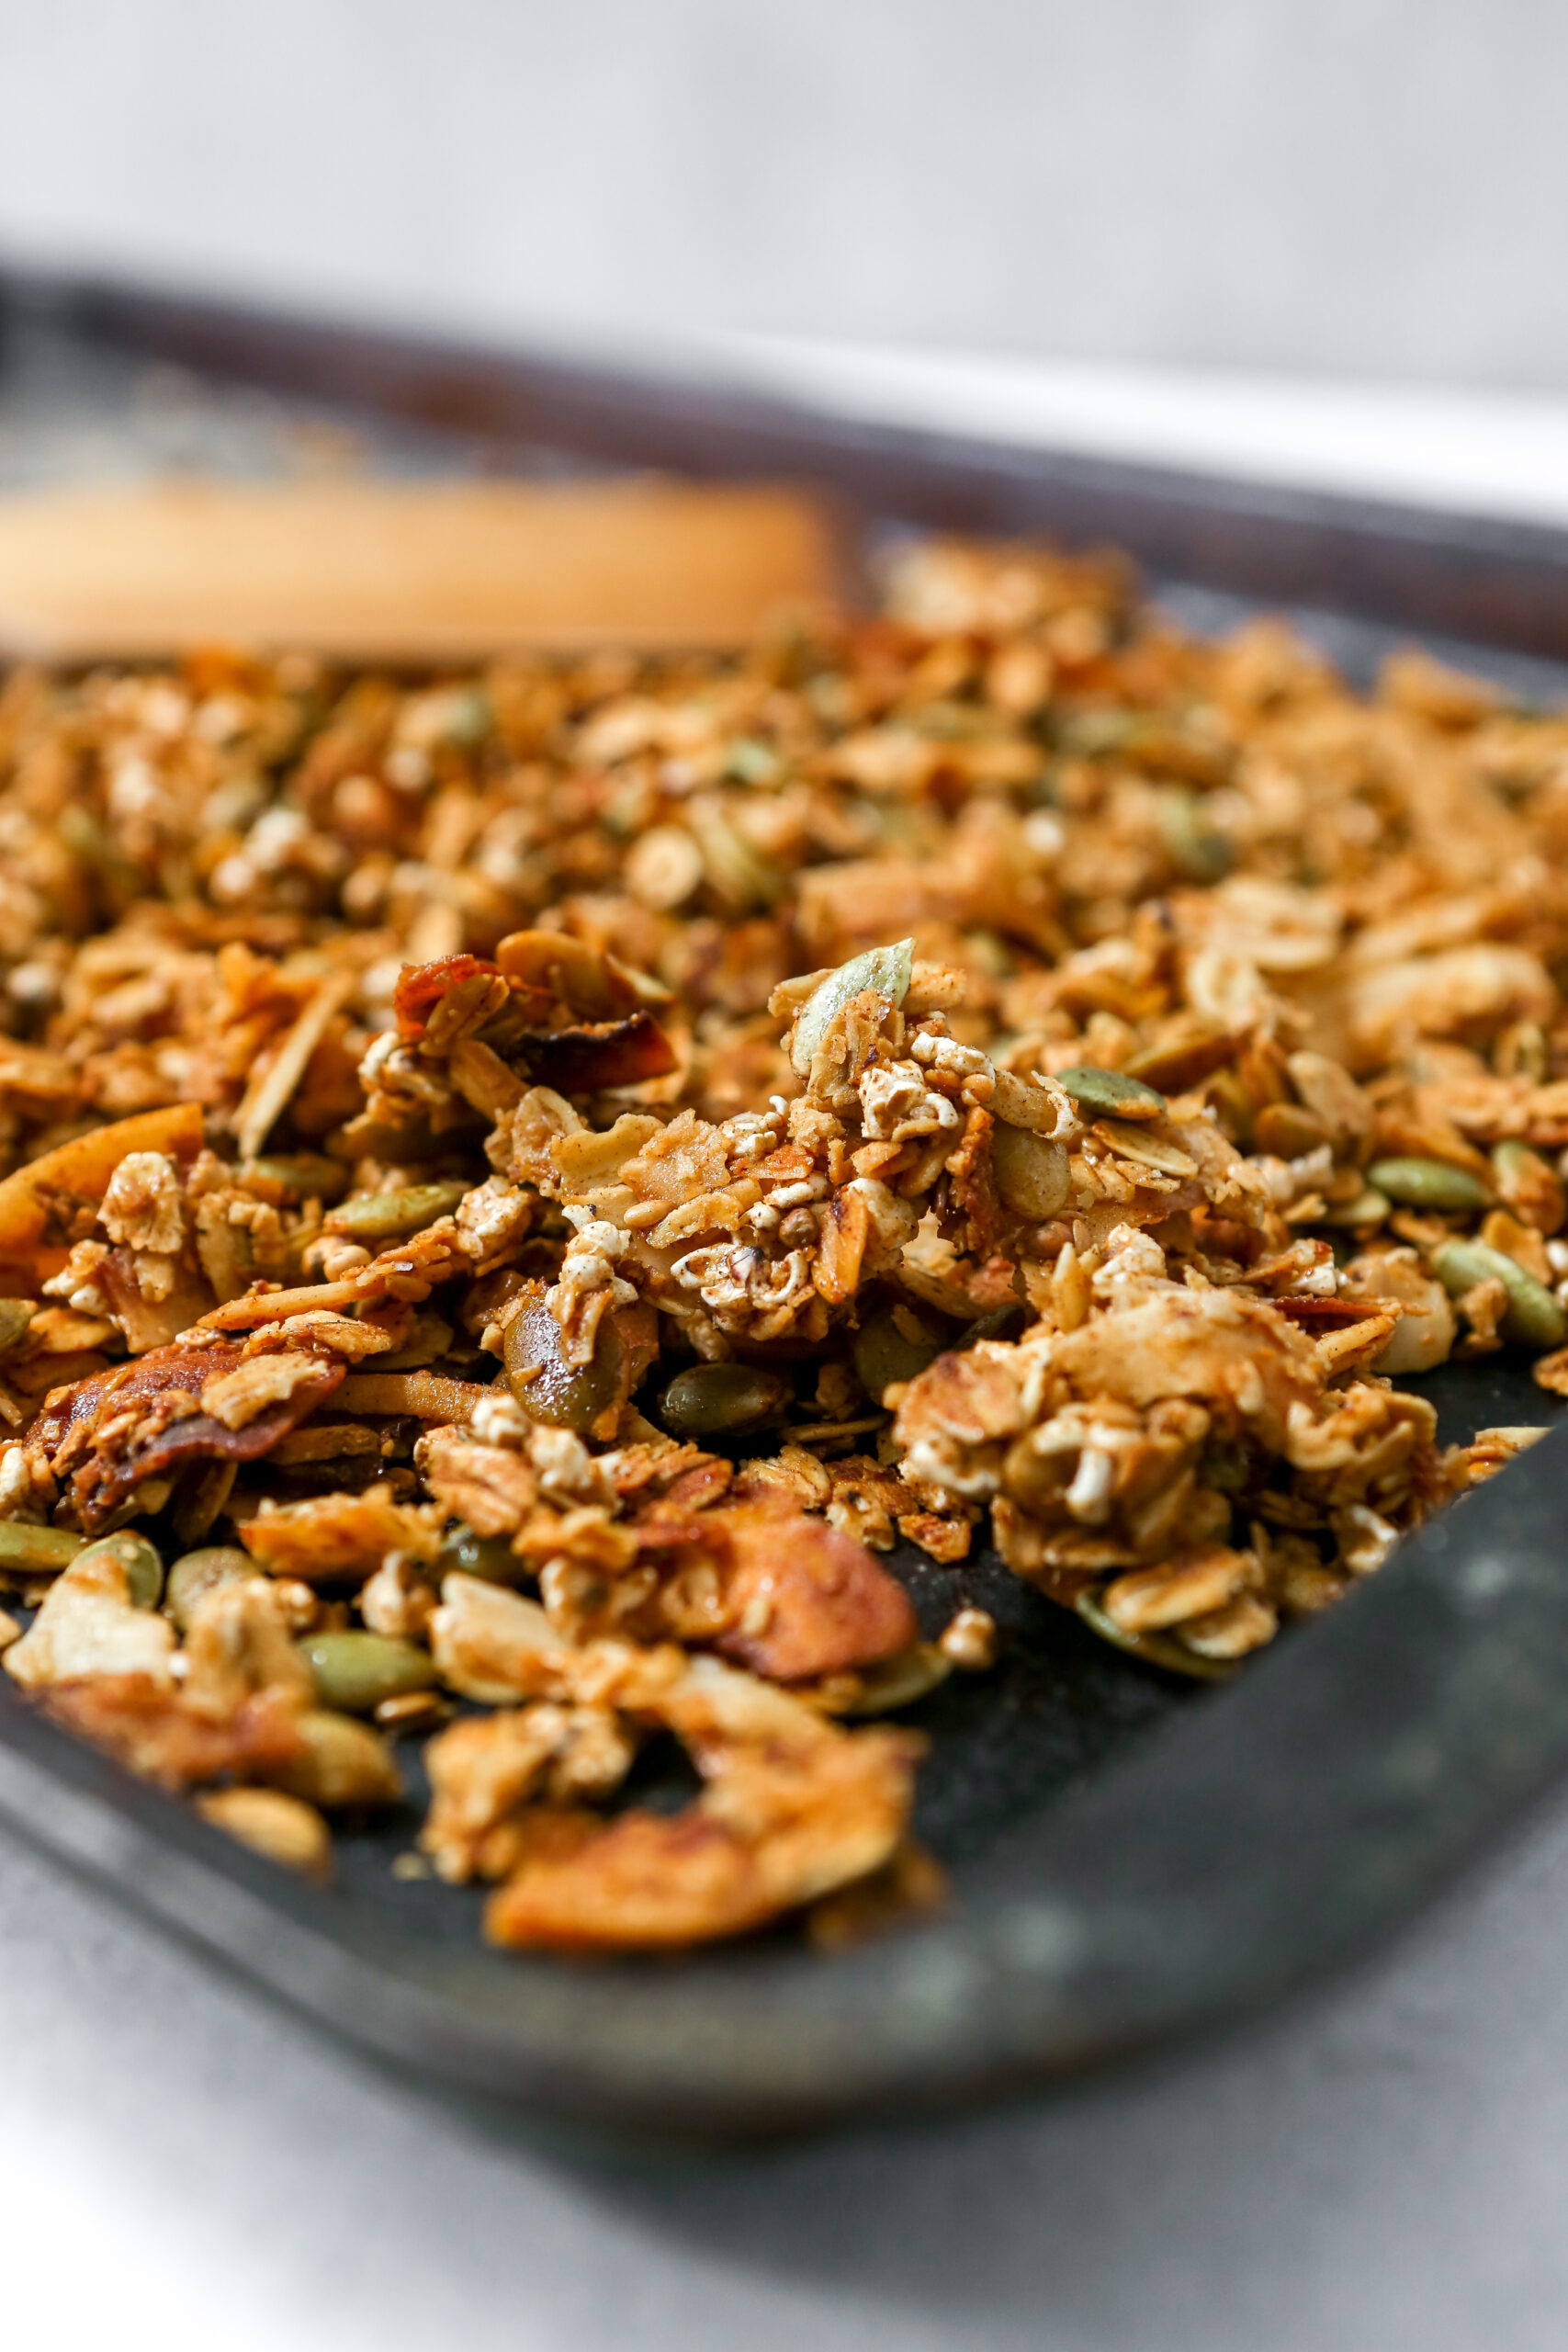 Homemade healthy granola recipe set on a black baking sheet